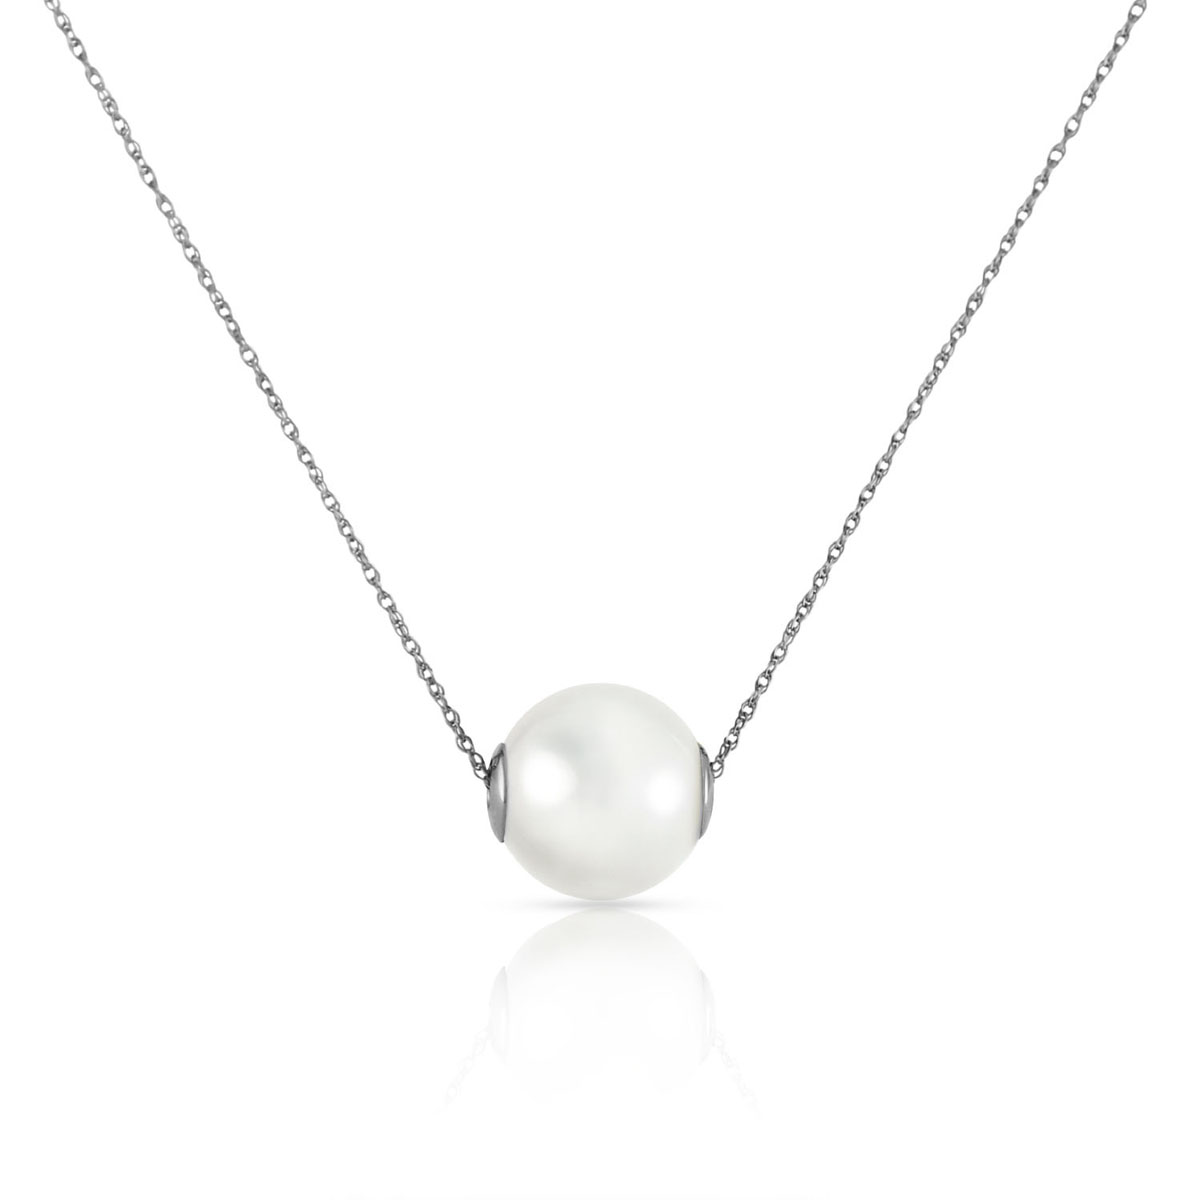 Round Cut Pearl Pendant Necklace 31.25 ct in 9ct White Gold